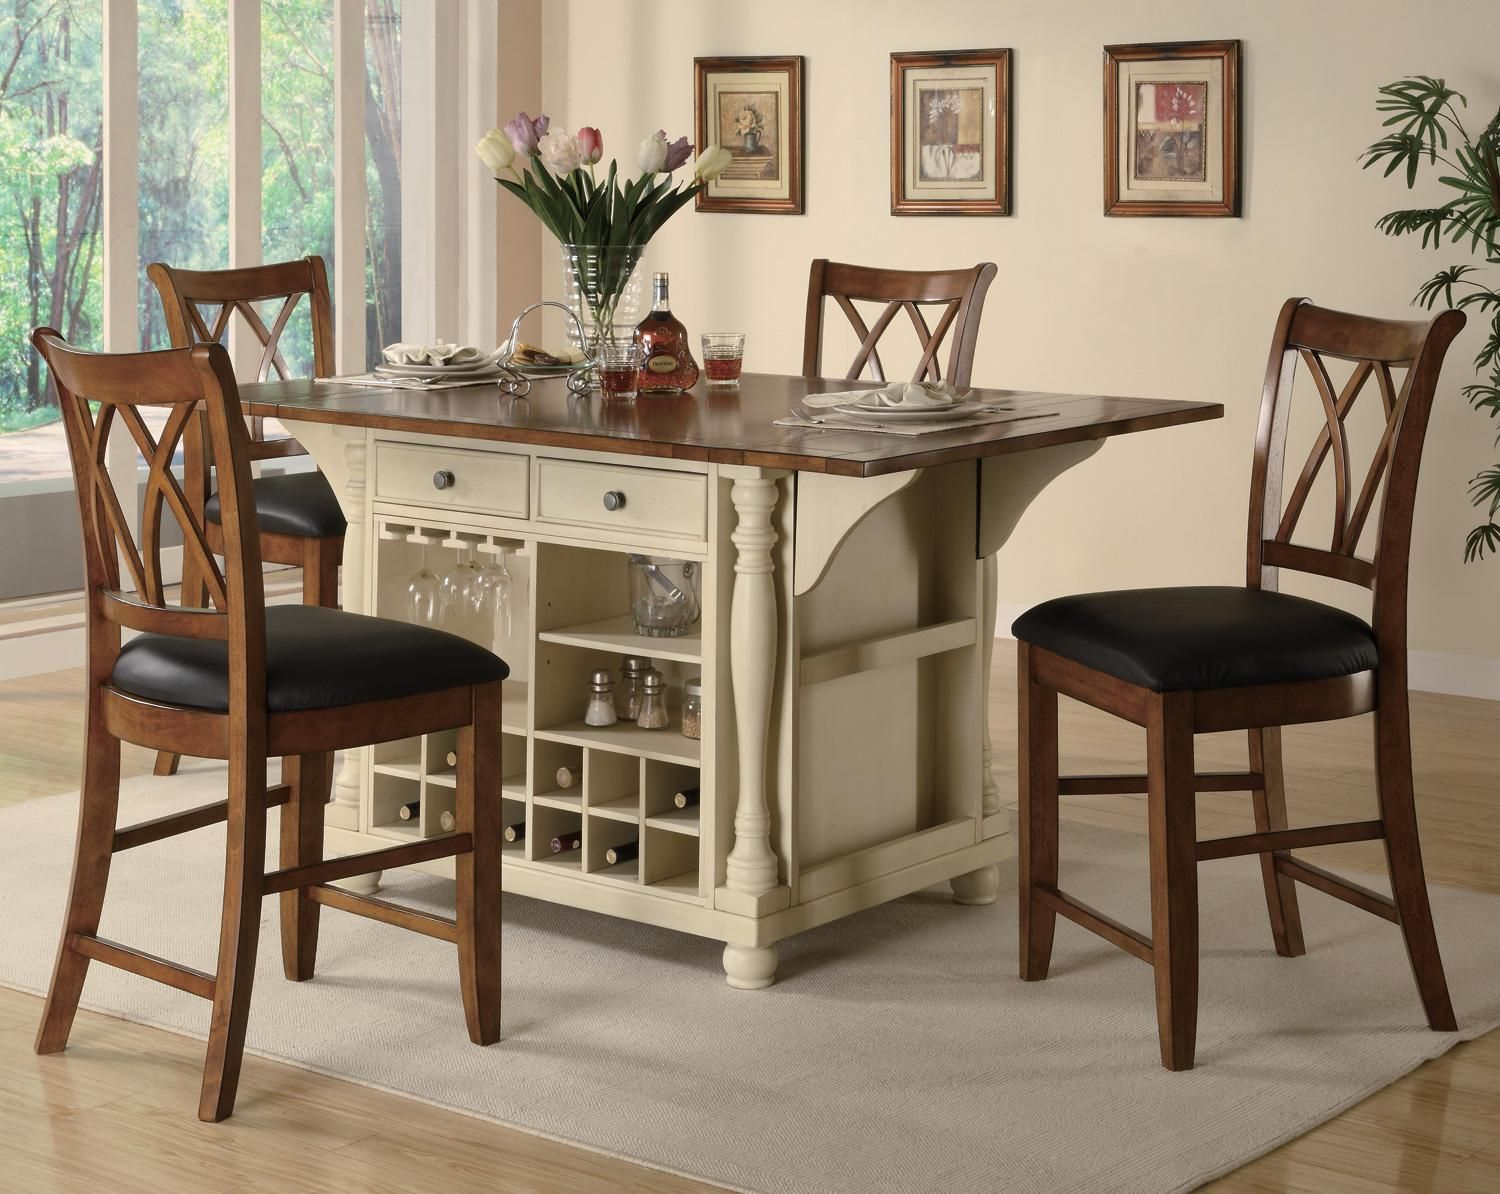 Tall Kitchen Table And Chairs Eames Office Chair Replica Uk Dinette Sets